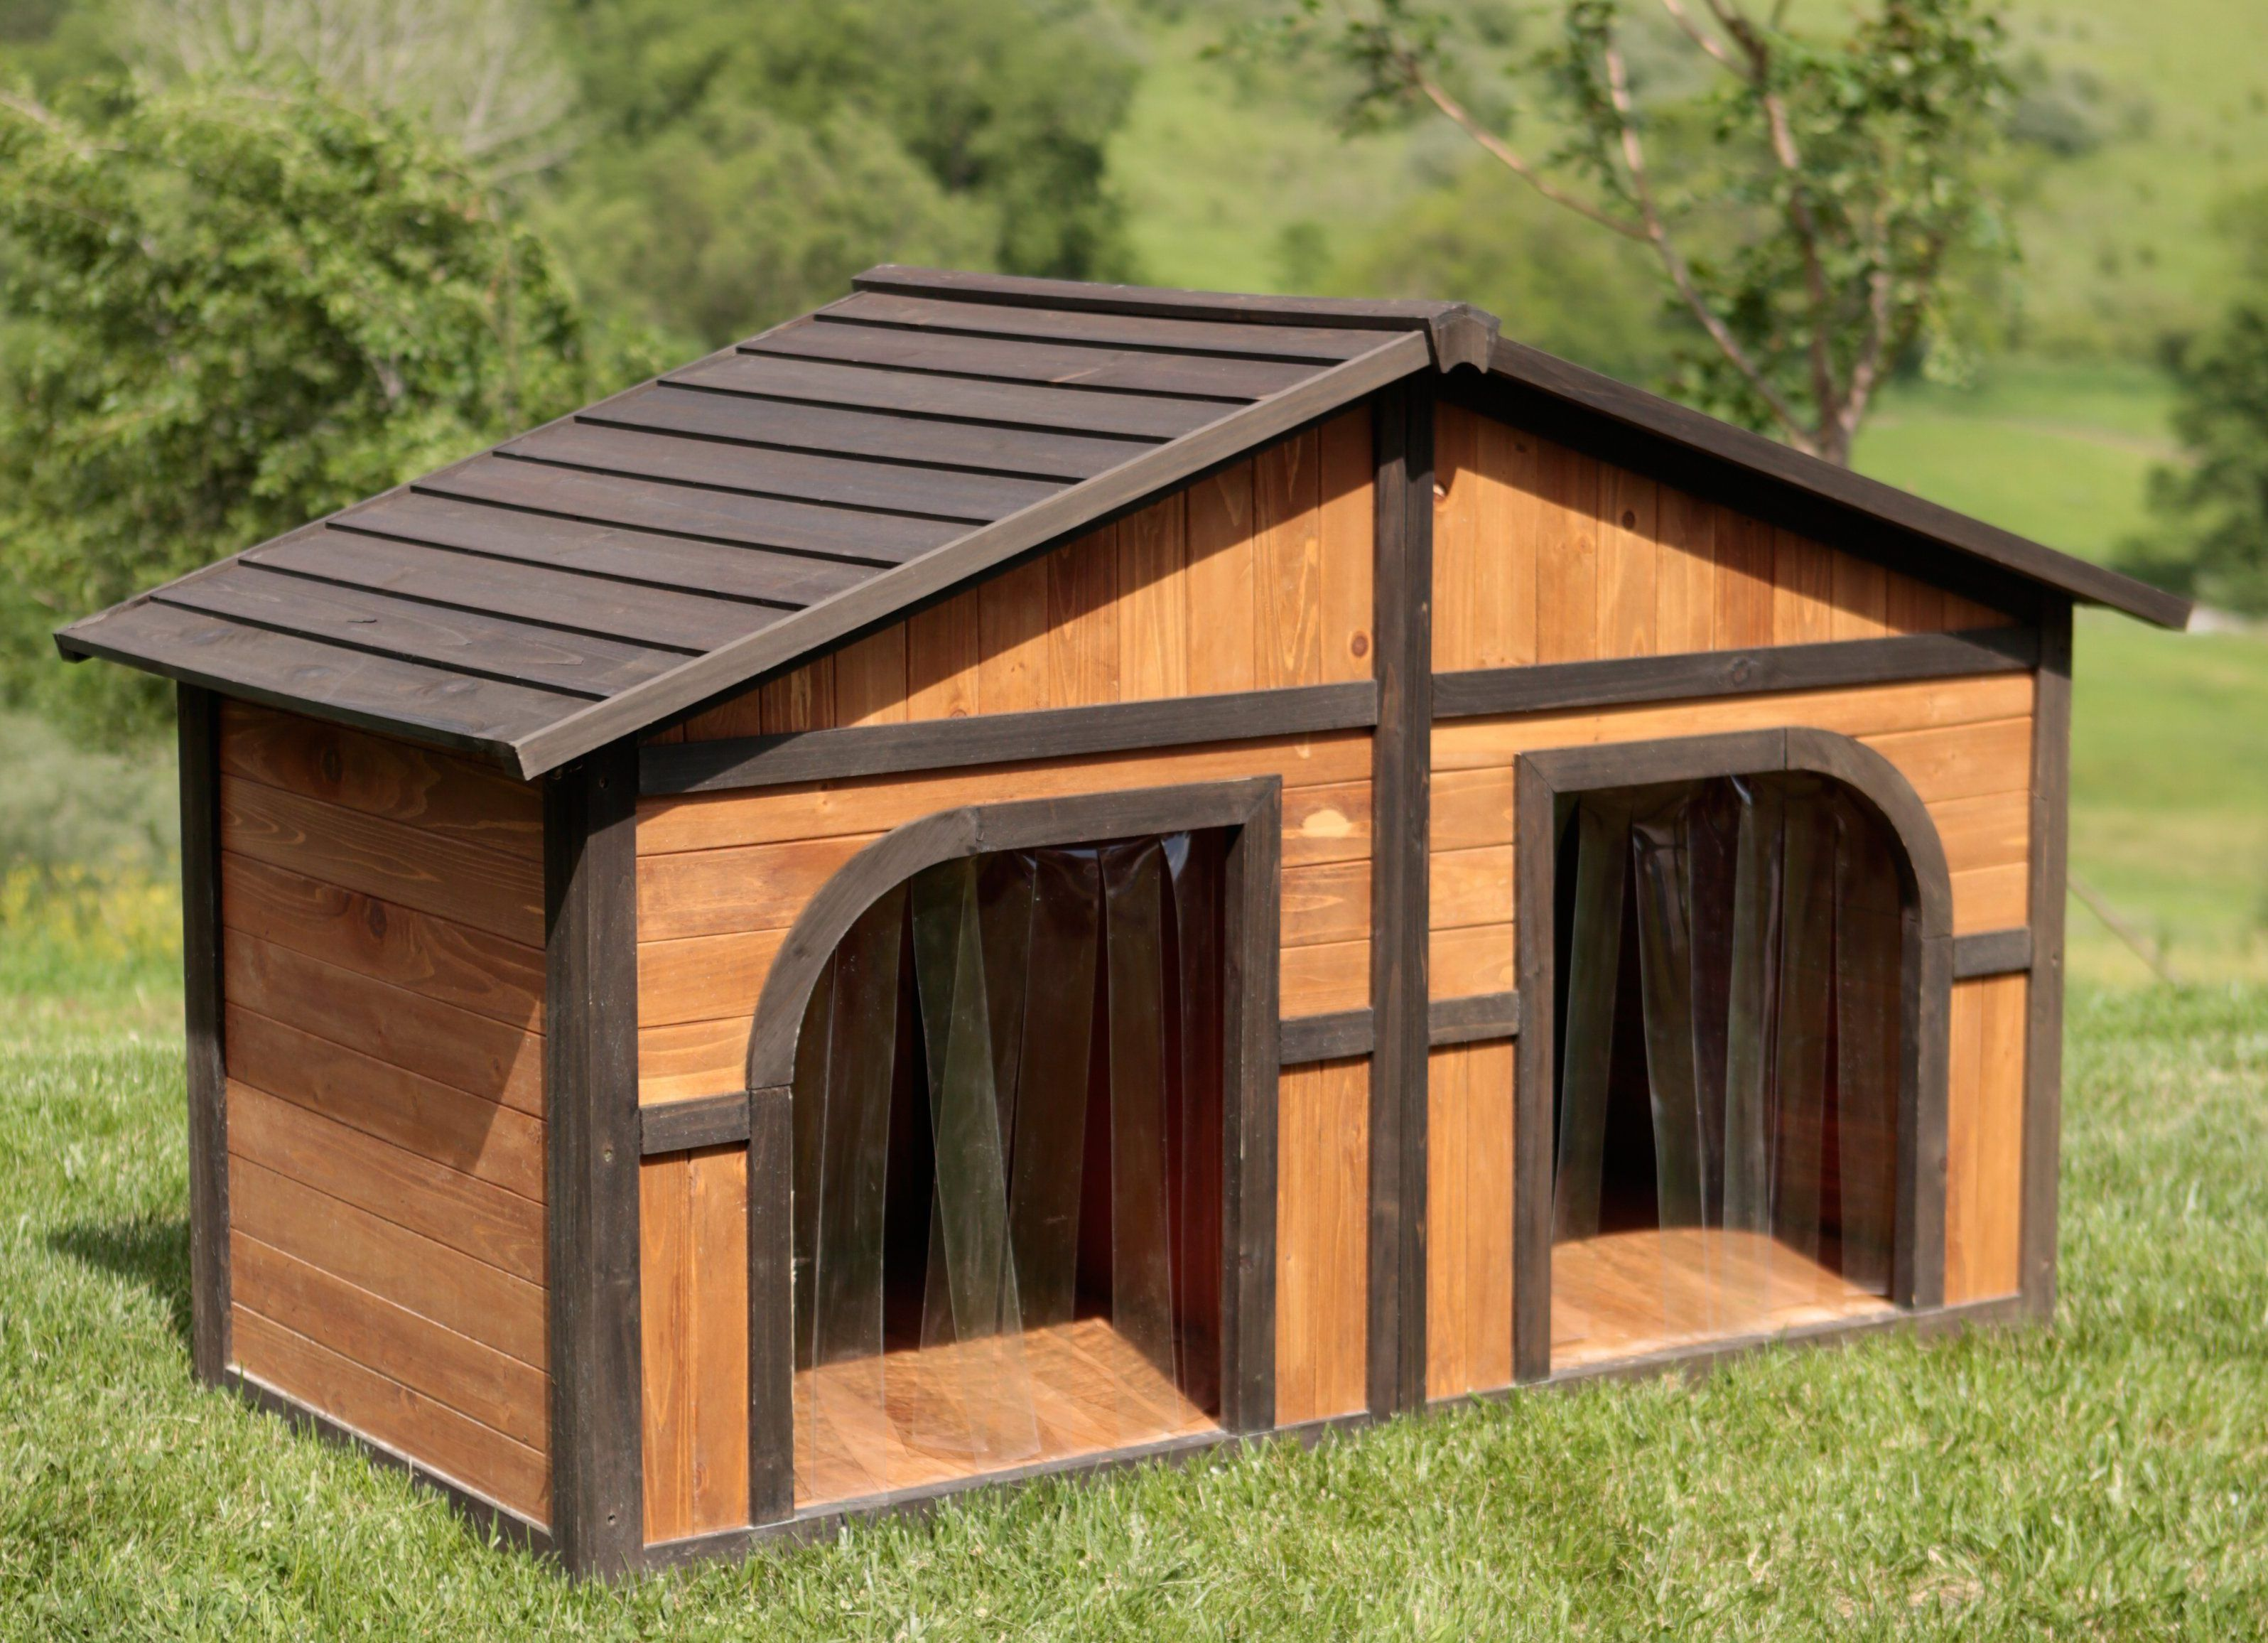 10 Simple But Beautiful Diy Dog House Designs That You Can Do Easily Dog House Plans Dog House Diy Outdoor Dog House Large outdoor dog house ideas